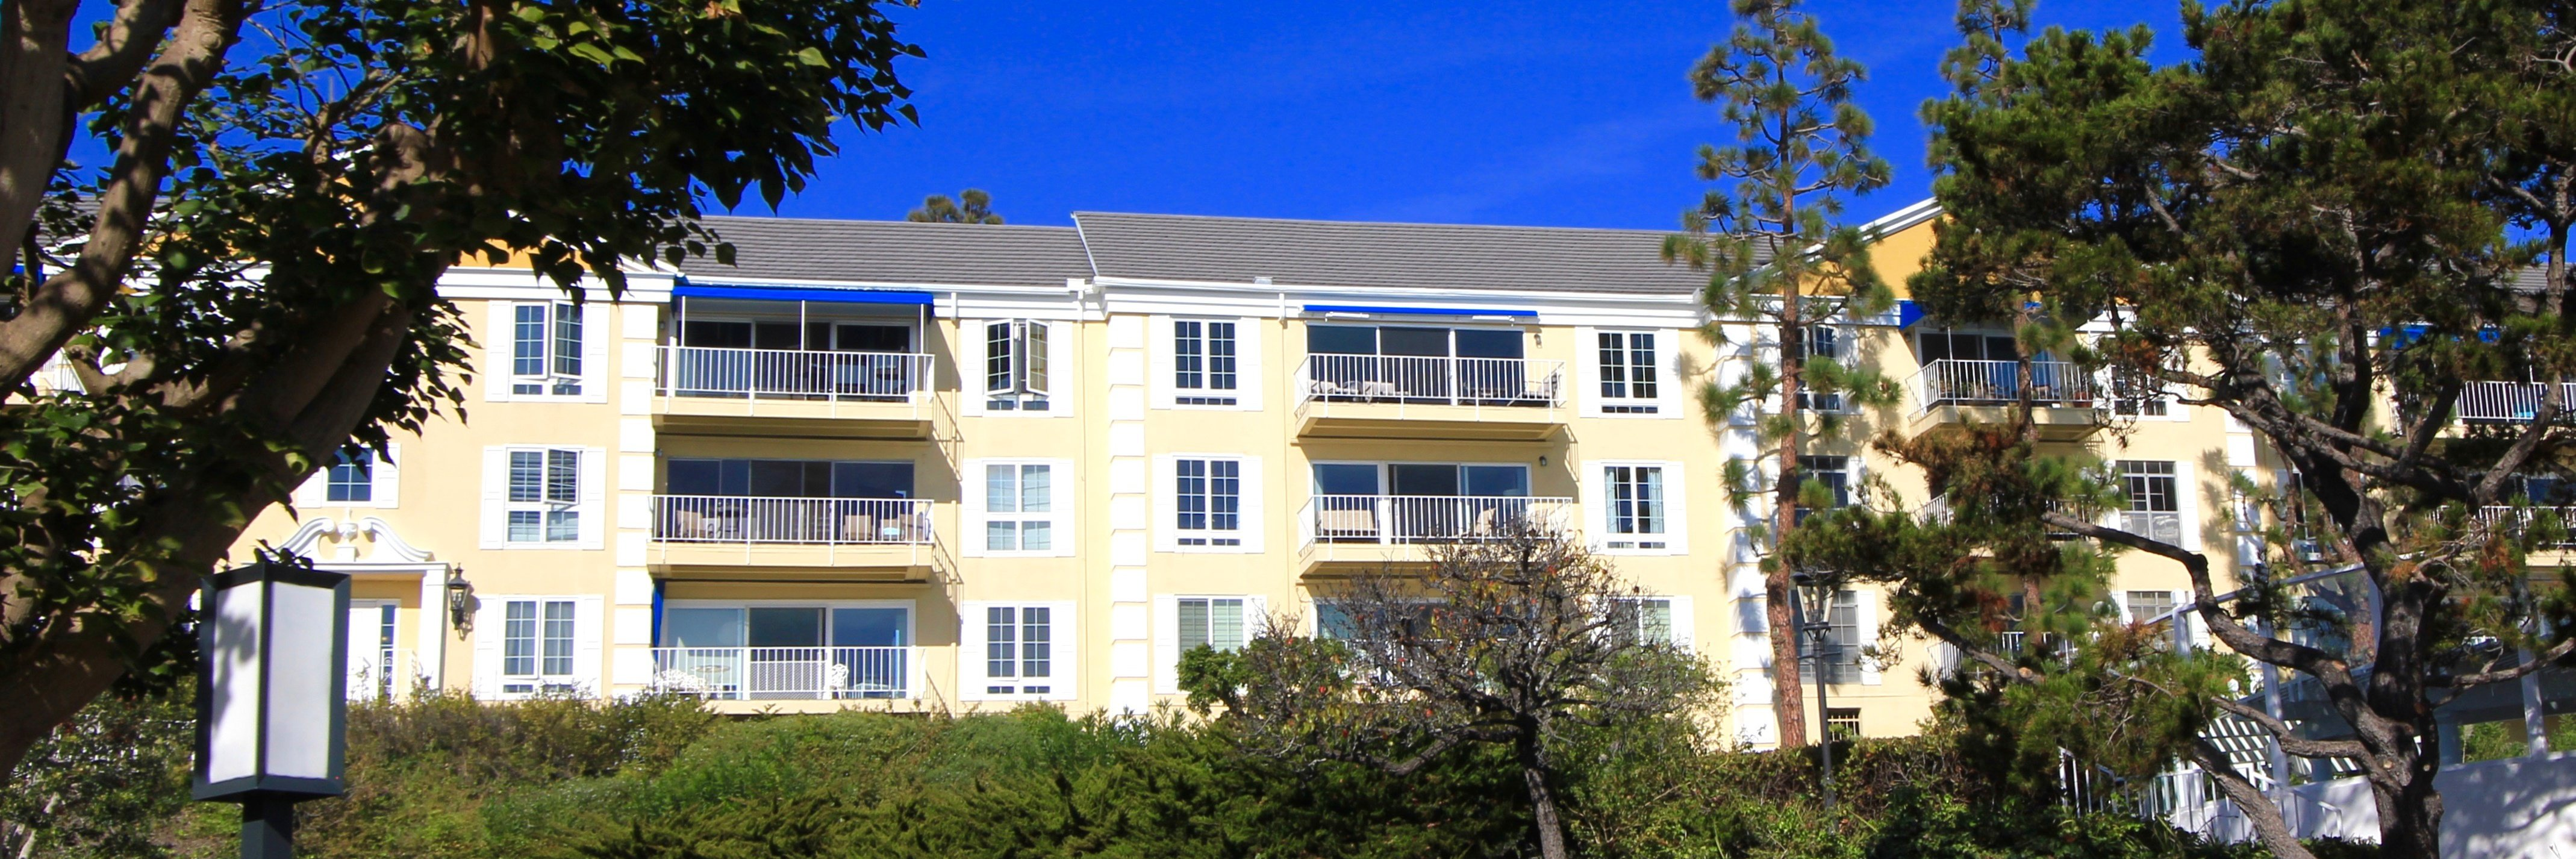 Versailles is a high end housing community located in the city of Newport Beach, CA